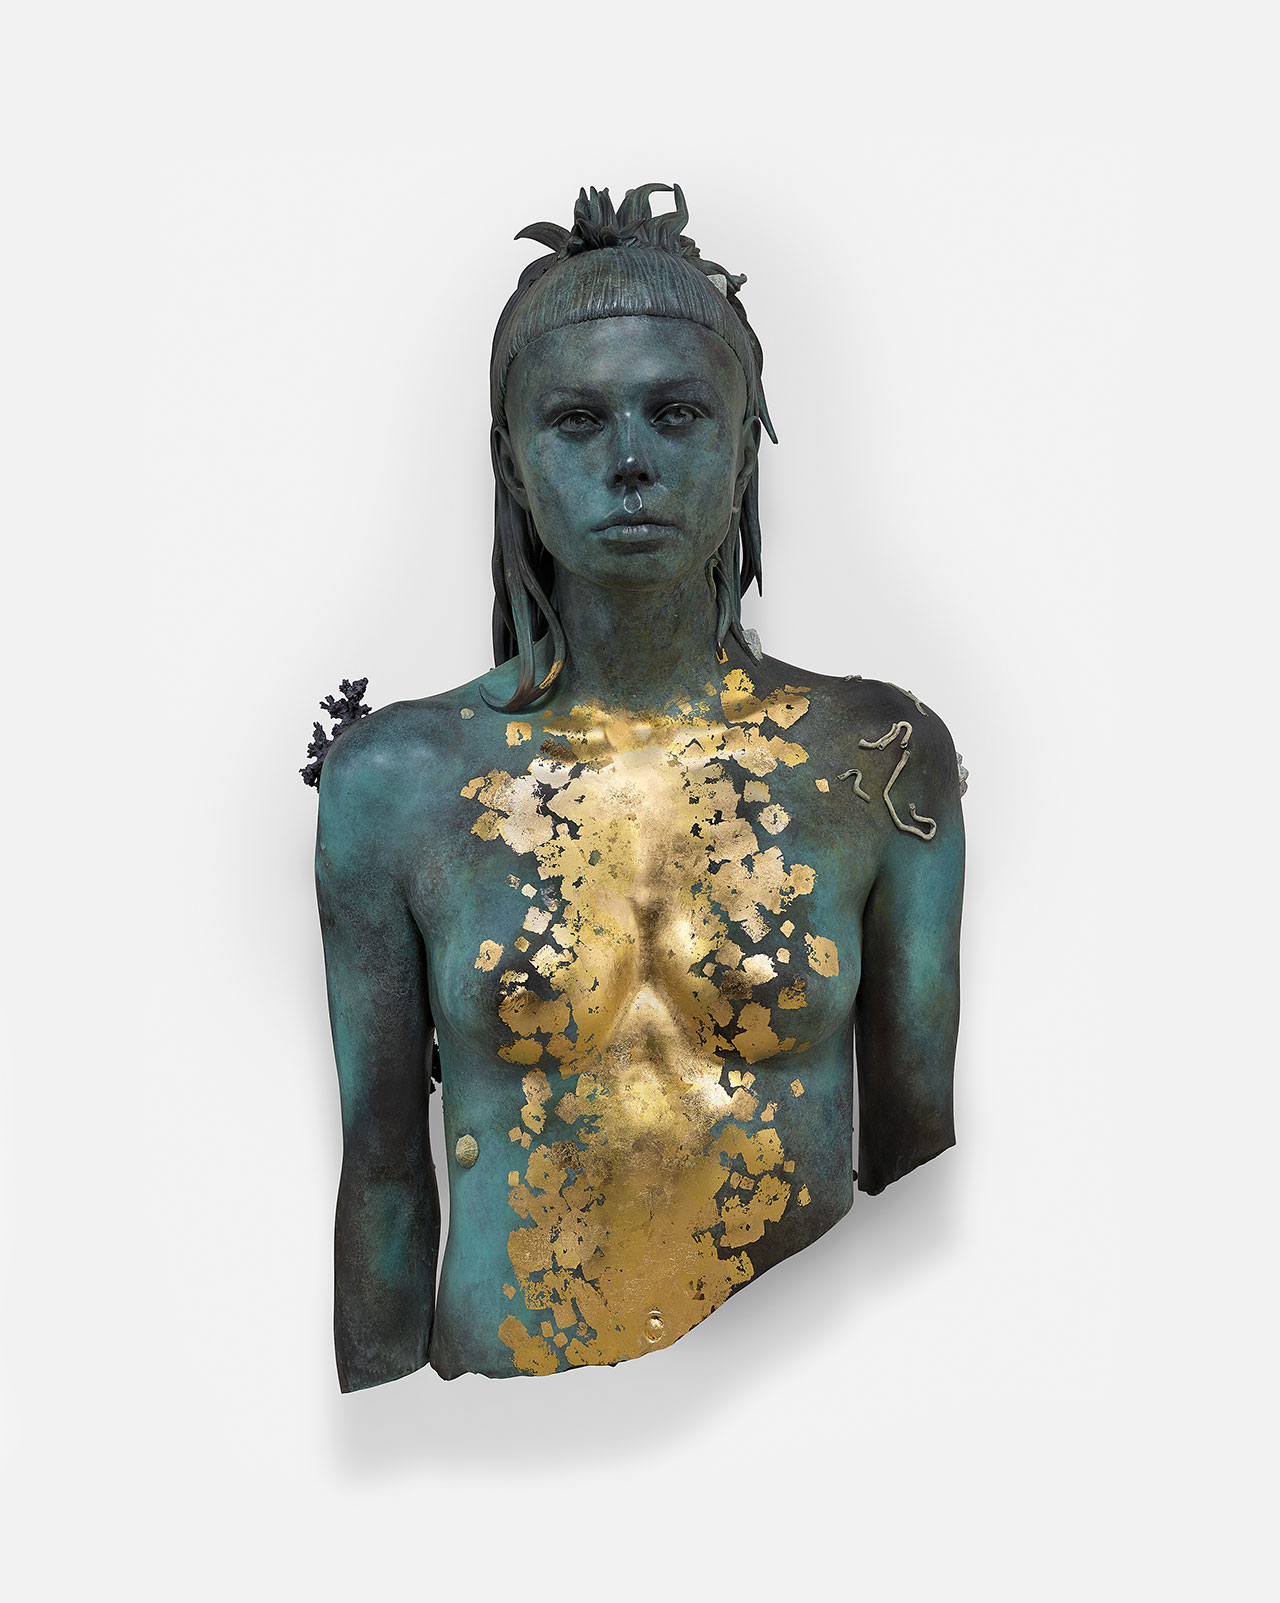 Damien Hirst, Aspect of Katie Ishtar ¥o-landi. Photographed by Prudence Cuming Associates © Damien Hirst and Science Ltd. All rights reserved, DACS/SIAE 2017.